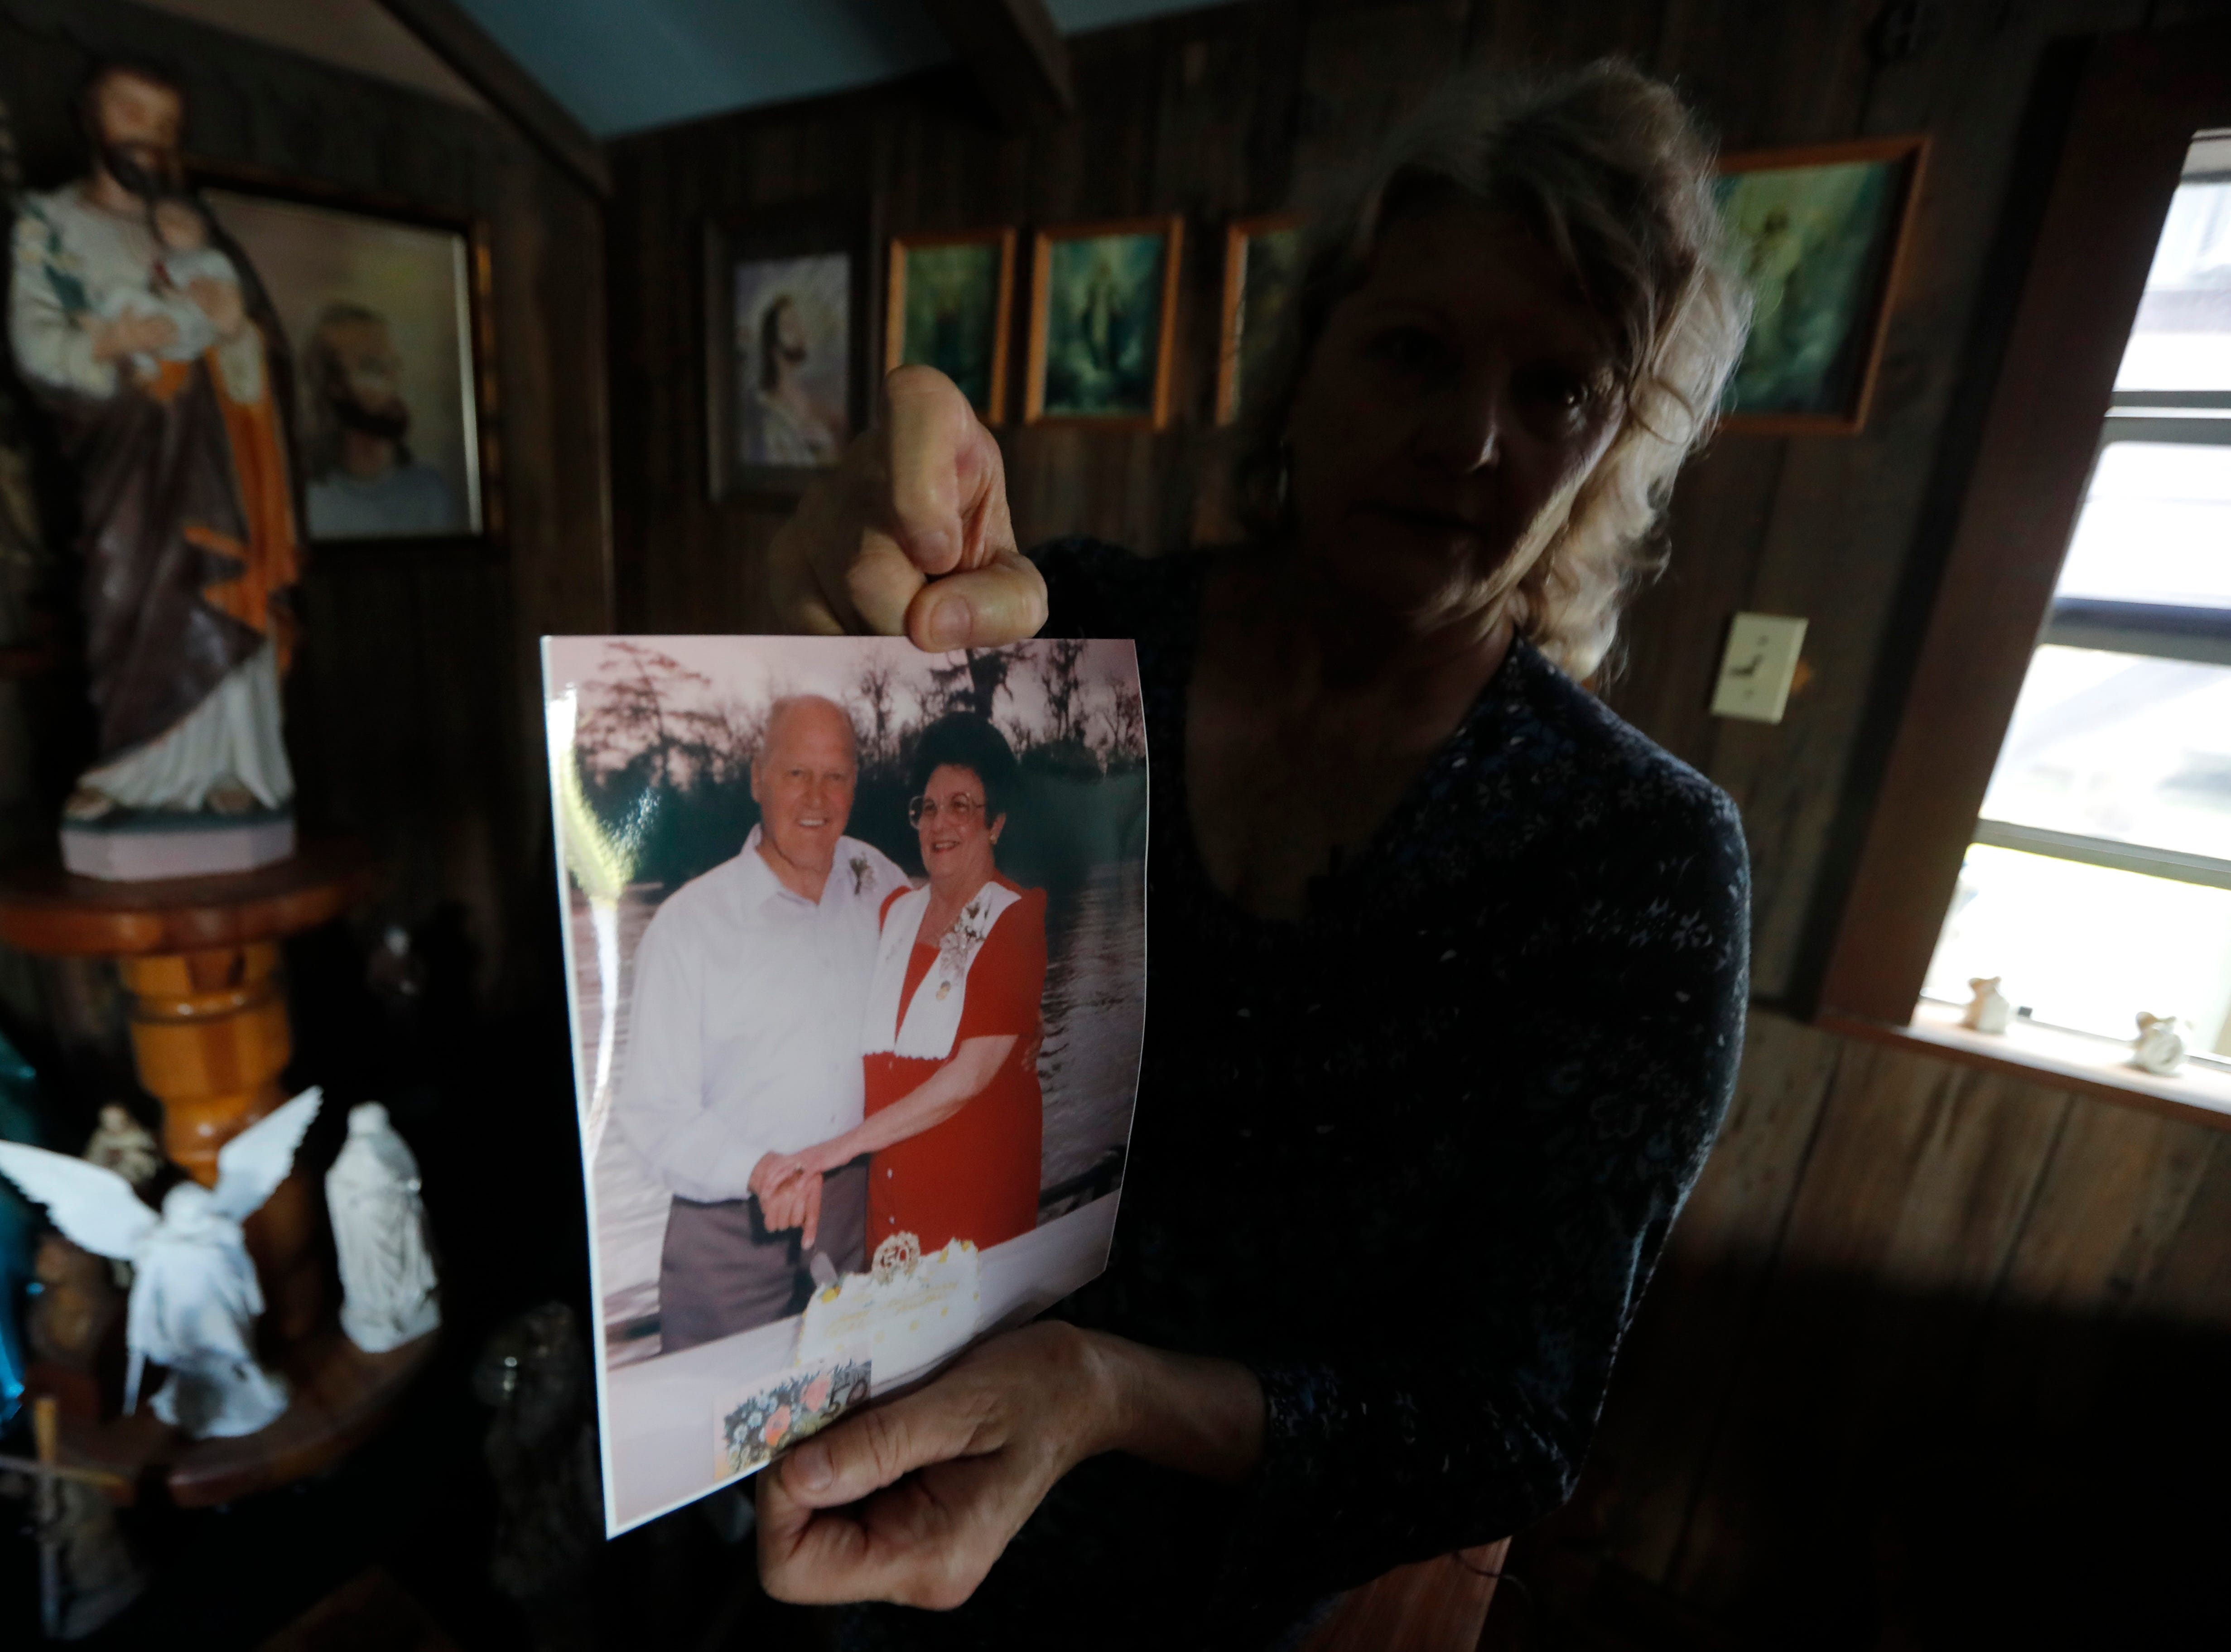 Pat Hymel shows a photo of her parents Martha and Bobby Deroche, inside Our Lady of Blind River Chapel, along the Blind River in St. James Parish, La., Tuesday, April 9, 2019. The chapel was built decades ago by her parents, after Martha had a vision of Jesus kneeling by a rock. Over the years, people have stopped by in boats or kayaks to pray in the one-room chapel. But floods over the years have damaged the little church, and the couple's grandson Lance Weber had to close it about two years ago out of safety concerns. (AP Photo/Gerald Herbert)